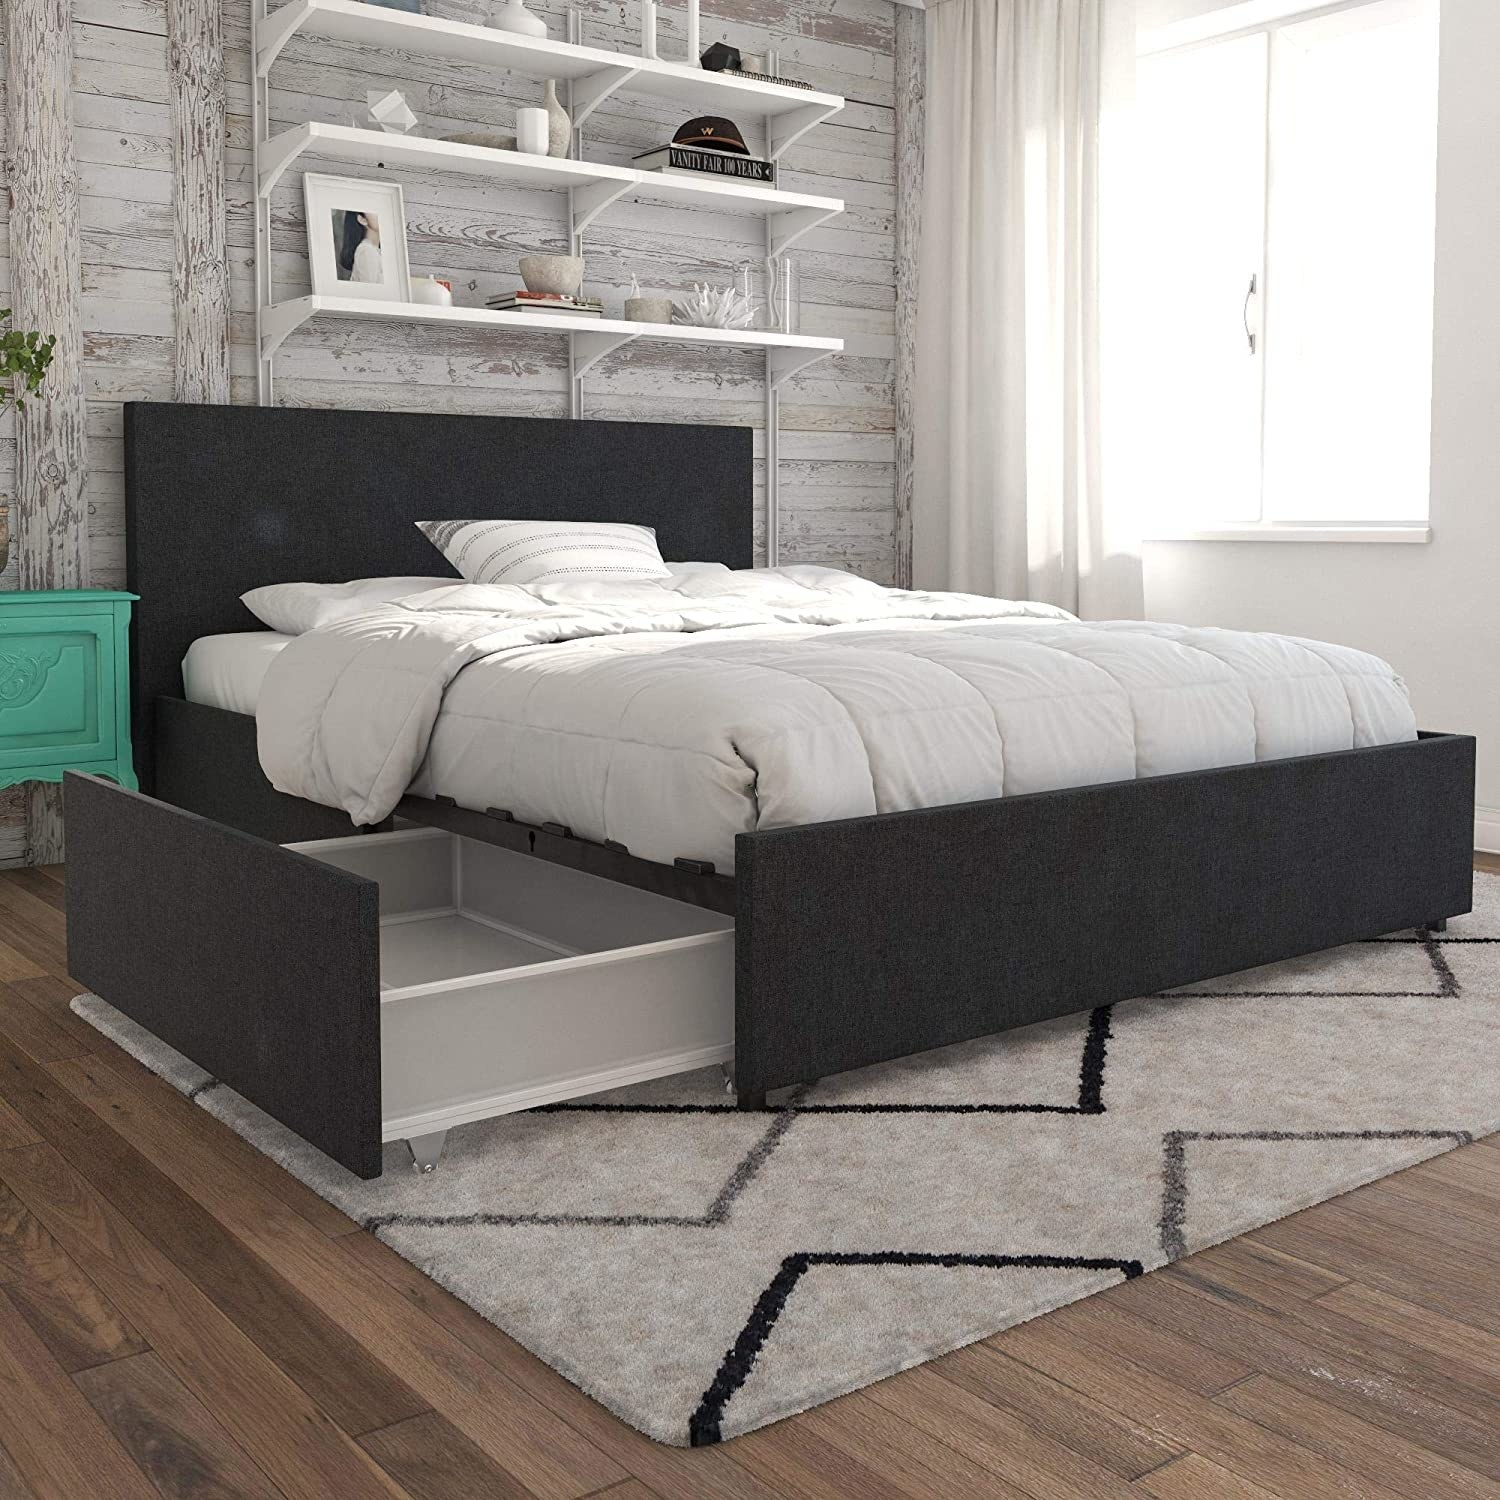 Queen bed frame with upholstered head and base boards and storage drawers underneath